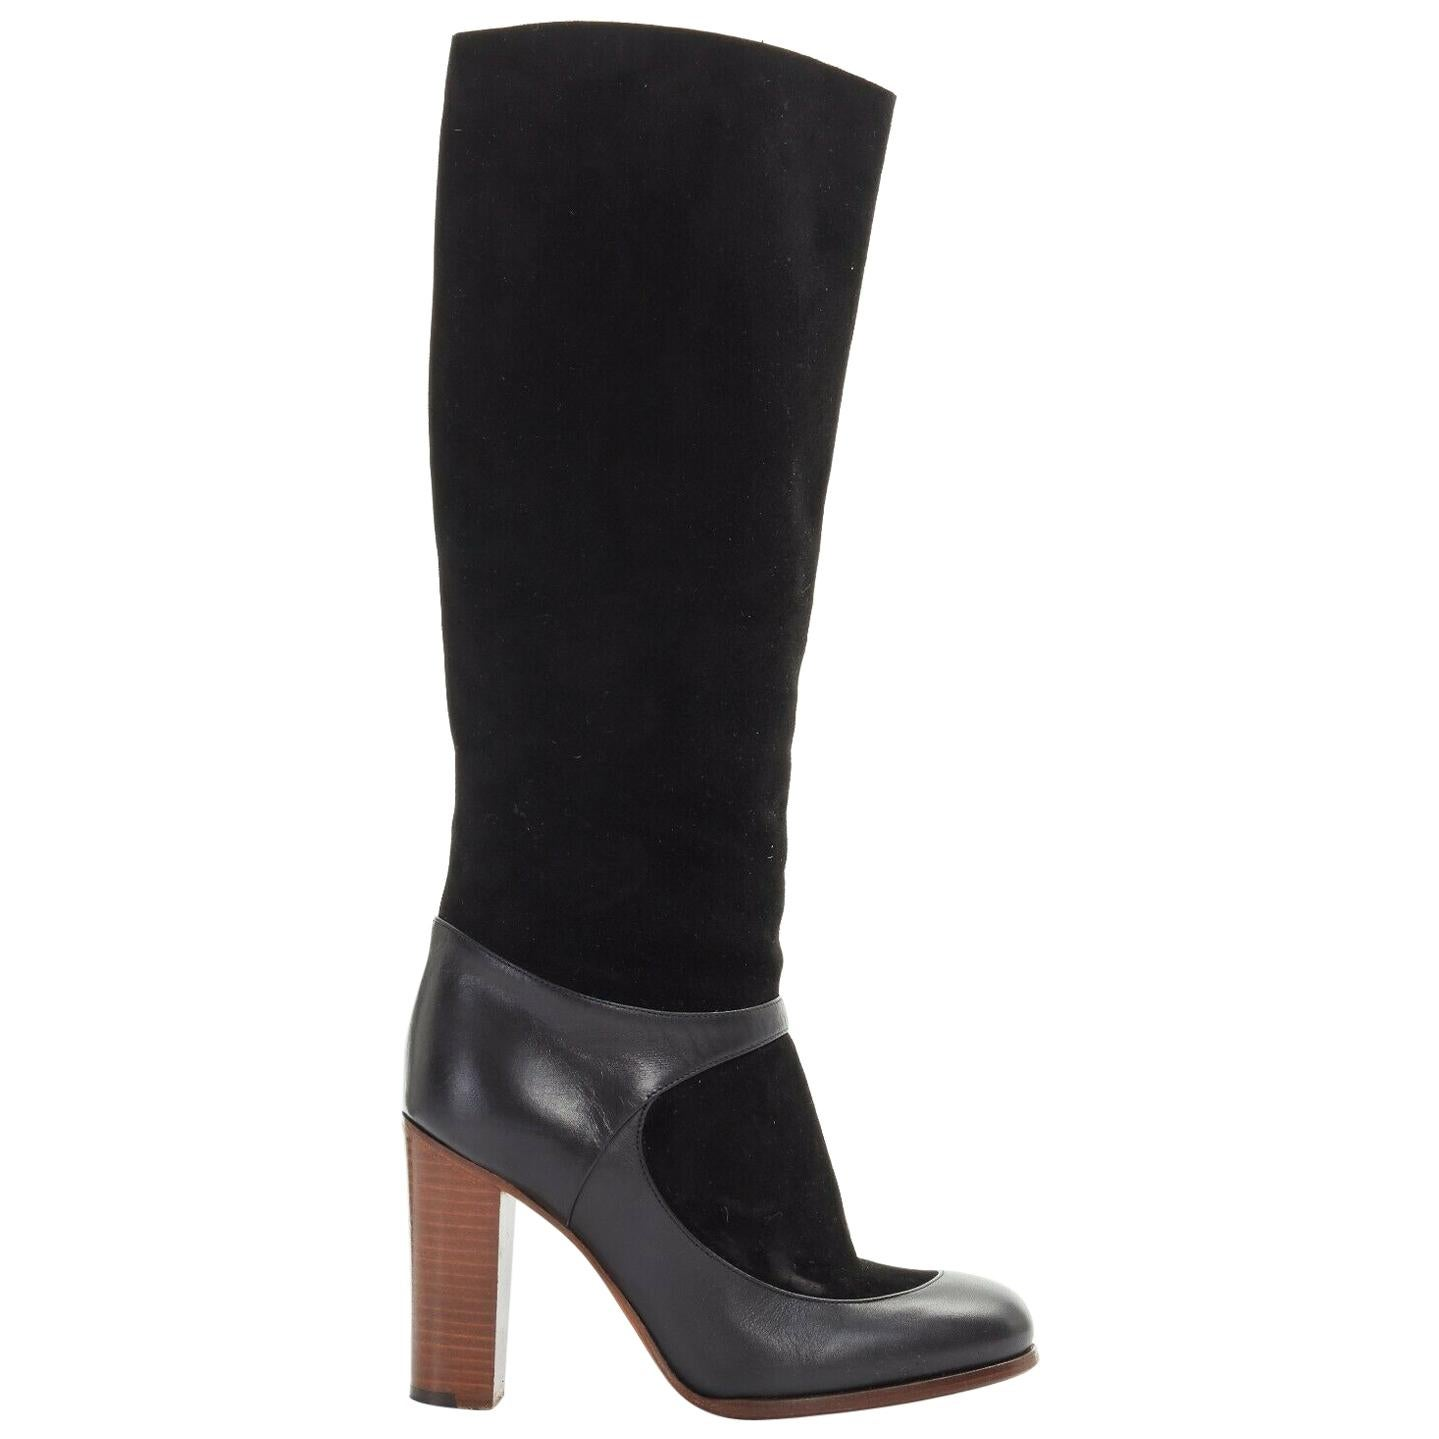 CELINE PHILO black suede sock ankle strap chunky wooden heel tall boot EU35.5